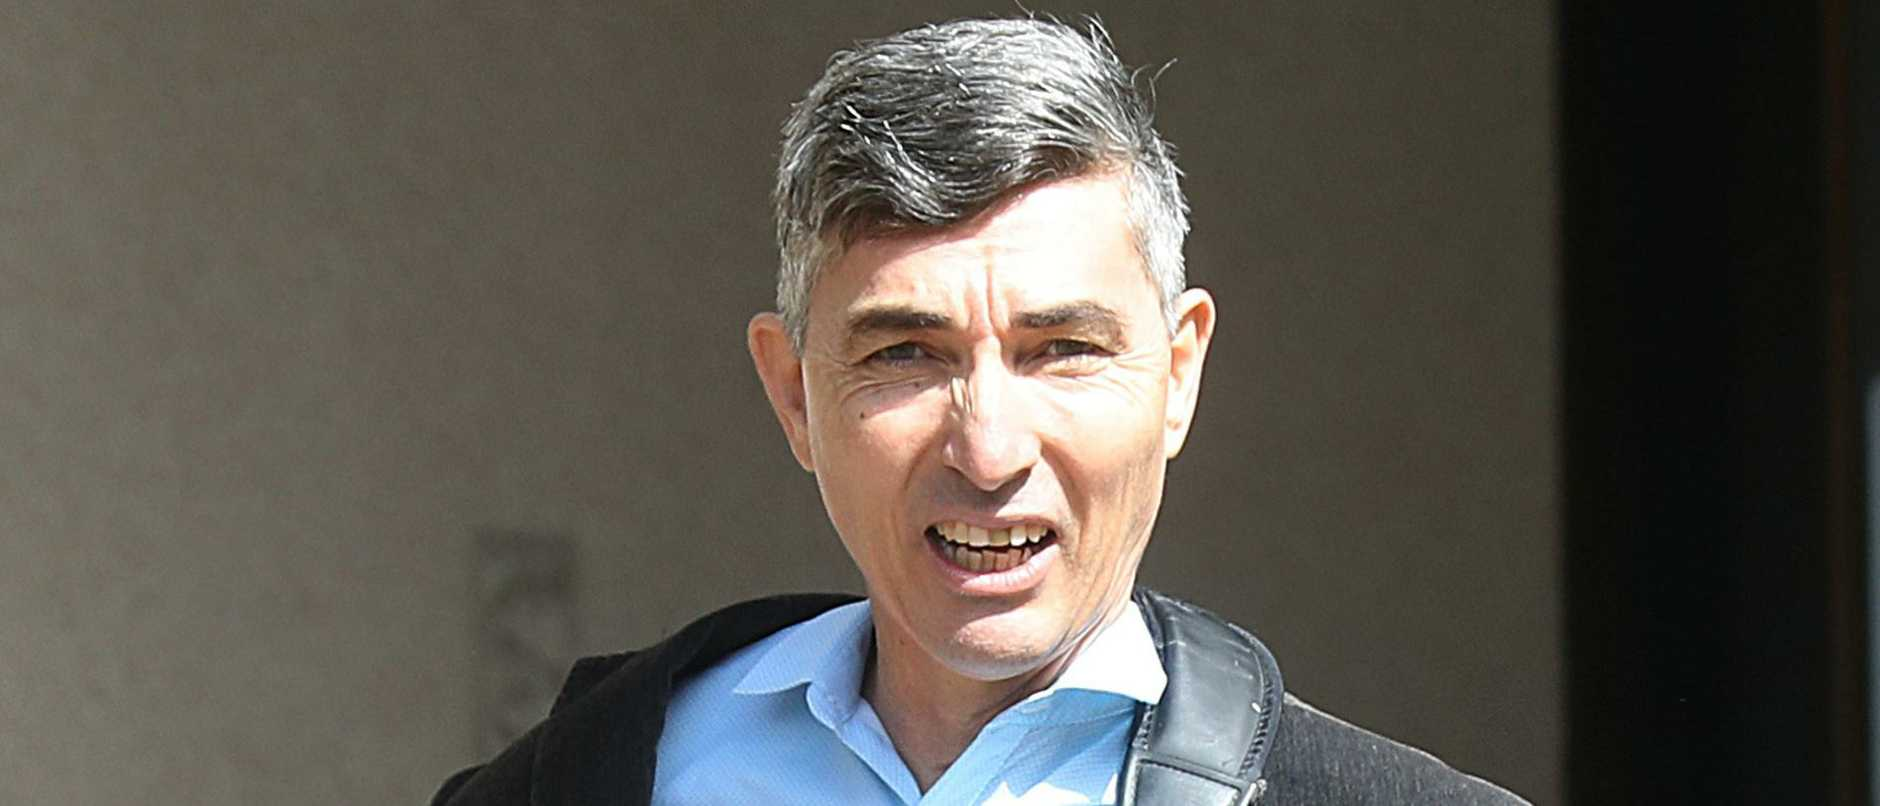 A once high-flying executive convicted of raping a woman in a motel room has been hospitalised after being severely bashed in jail.